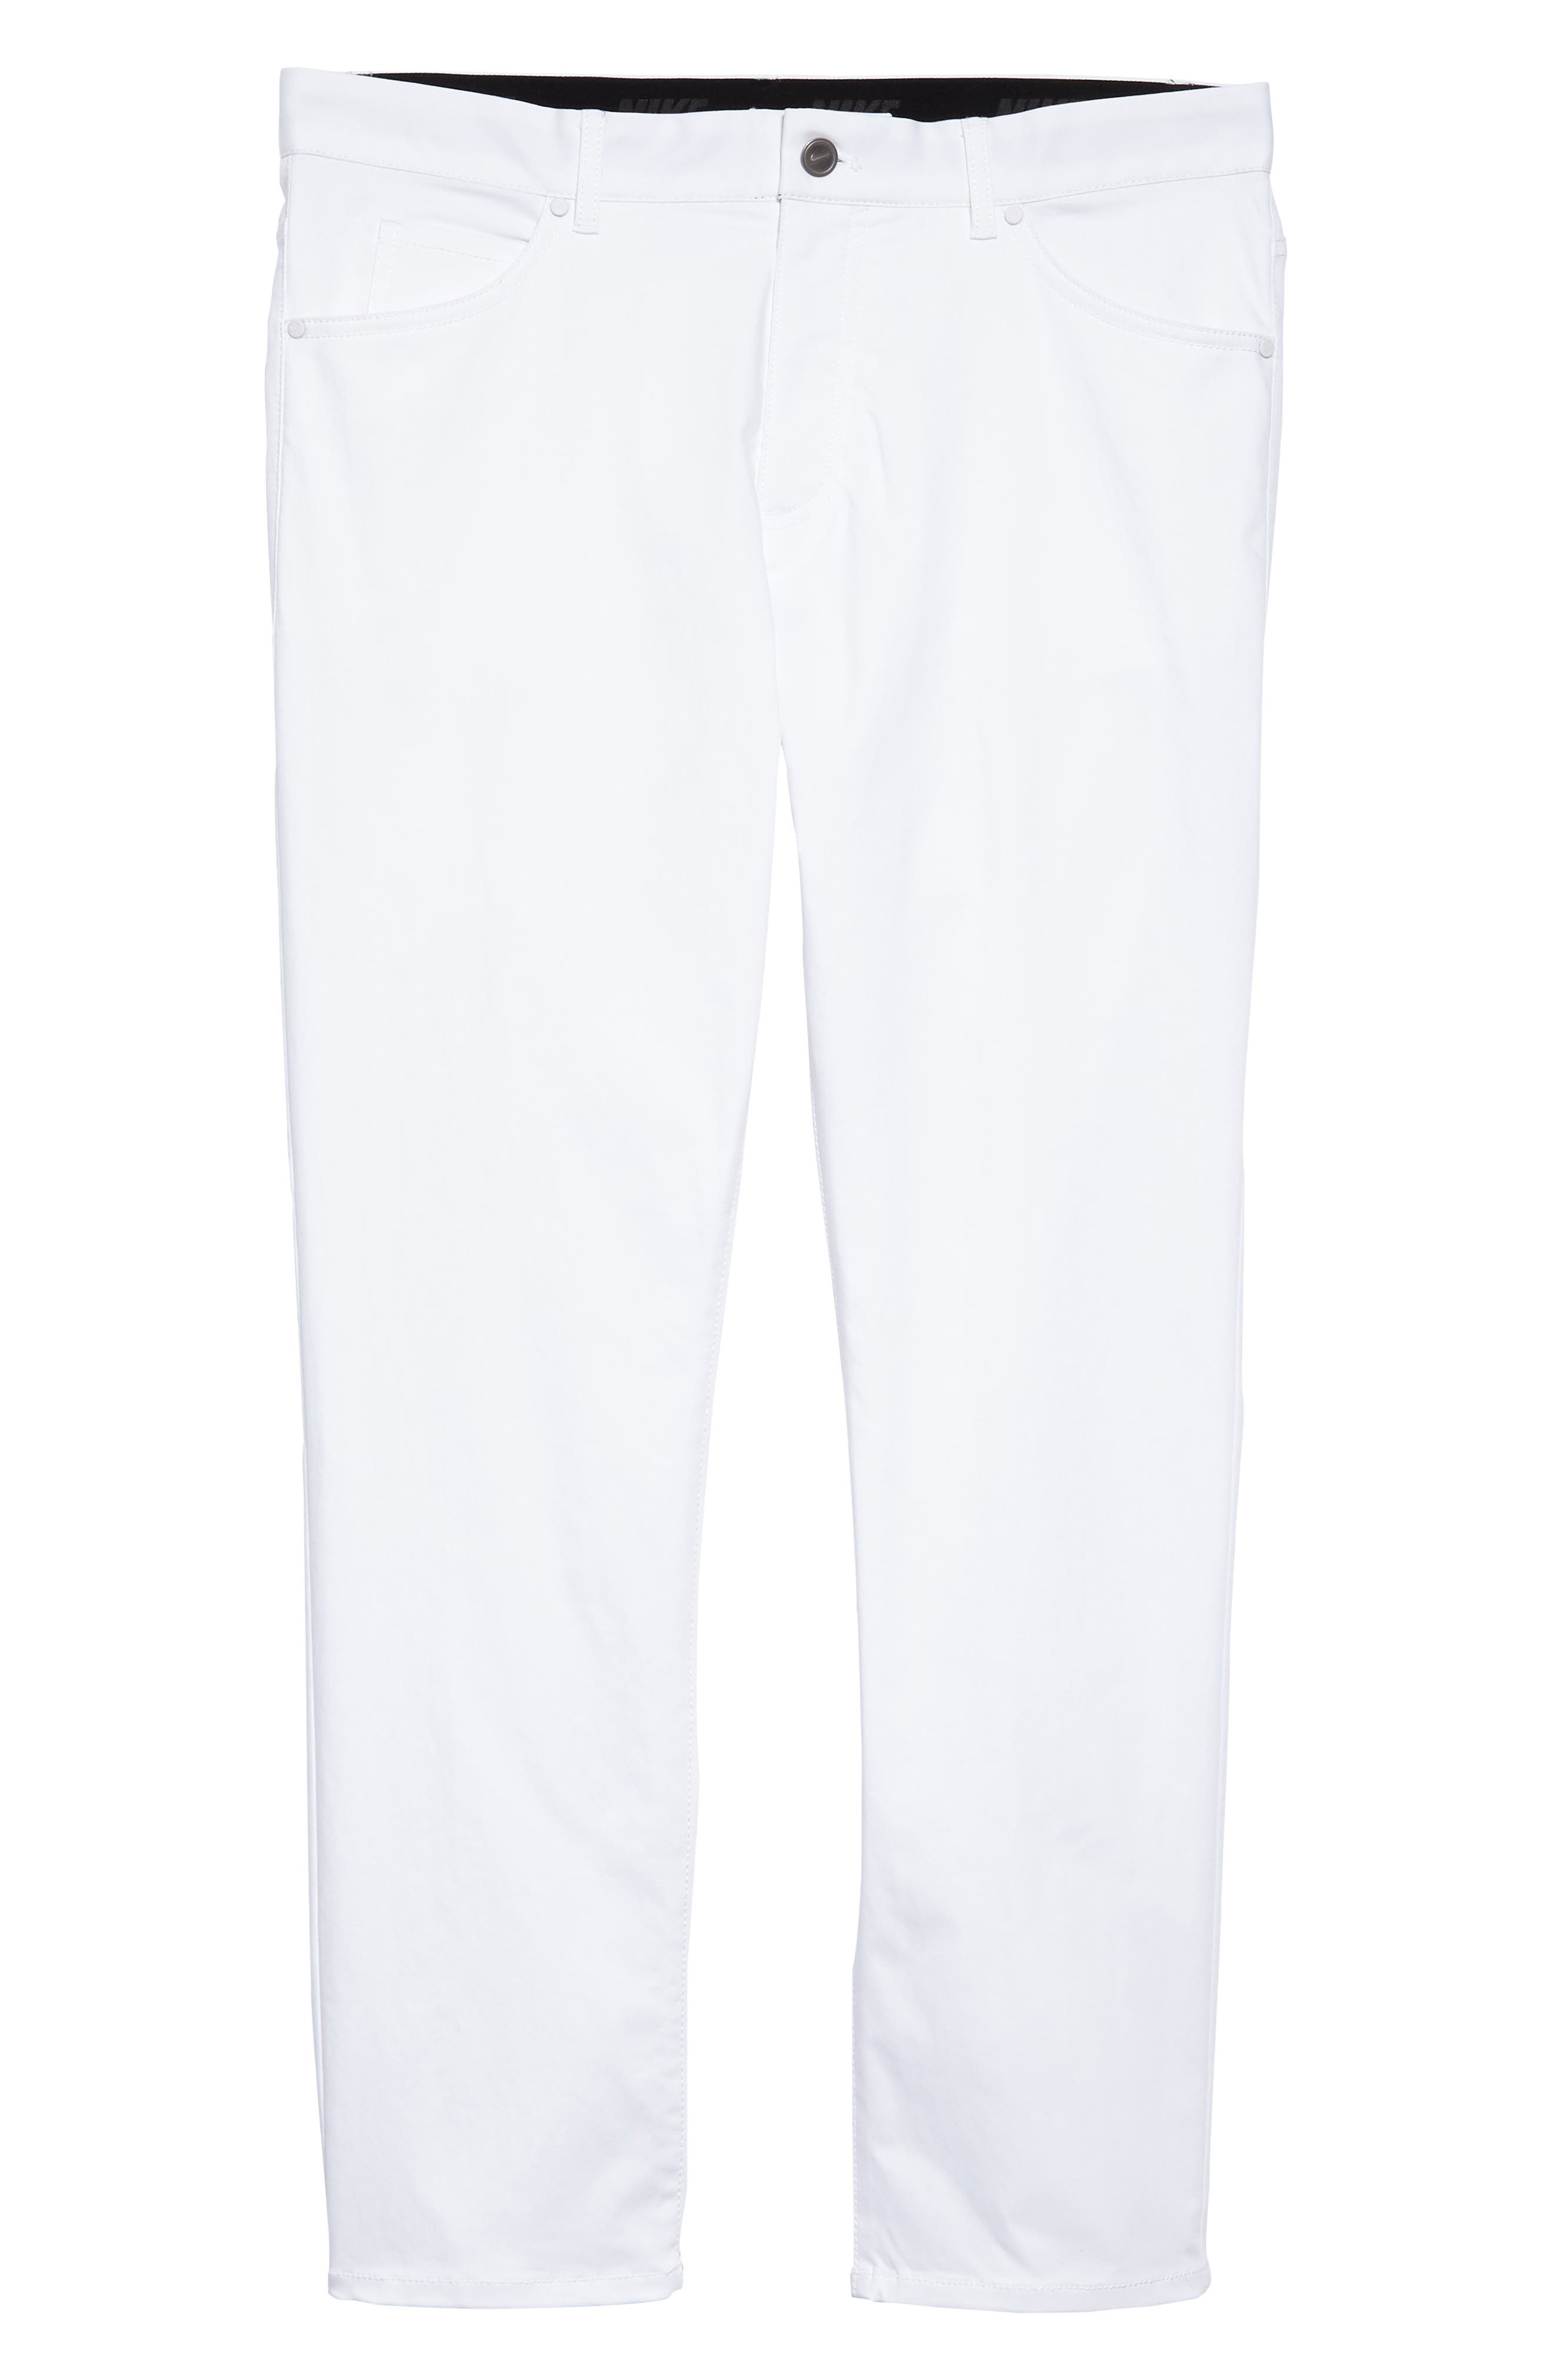 Dry Flex Slim Fit Golf Pants,                             Alternate thumbnail 6, color,                             White/ White